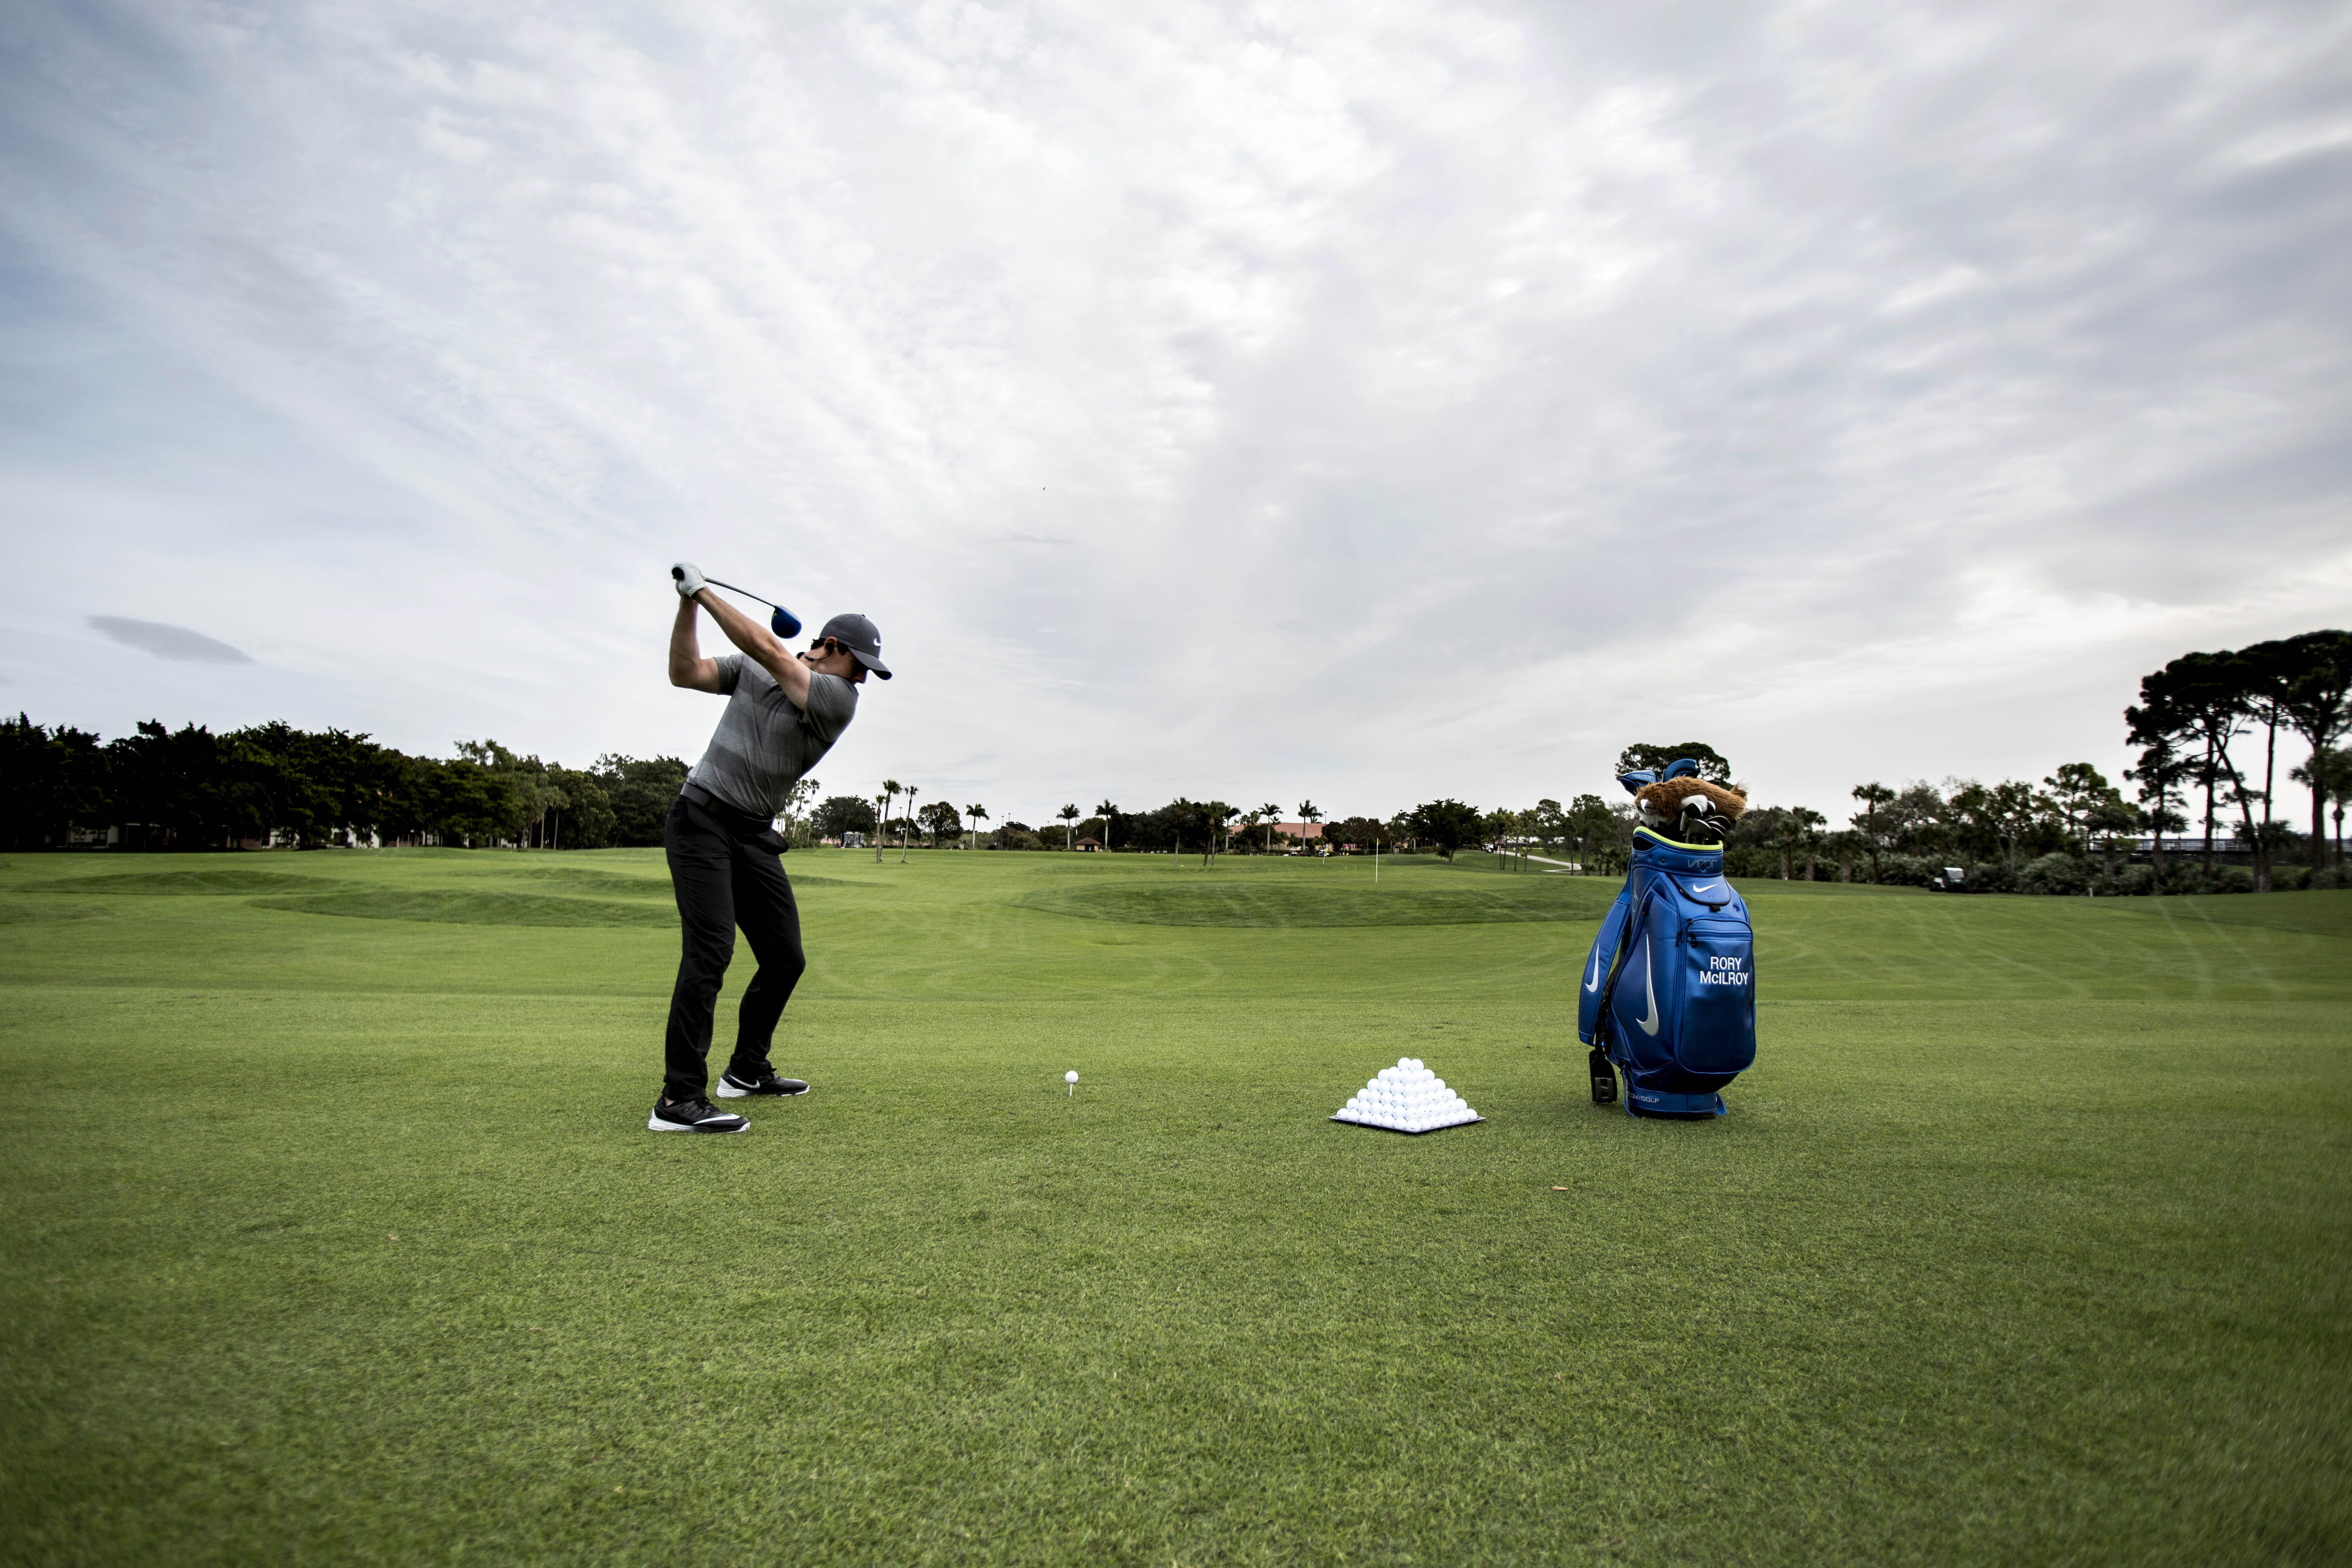 Rory_McIllroy_Golf_Course_Ice_1745